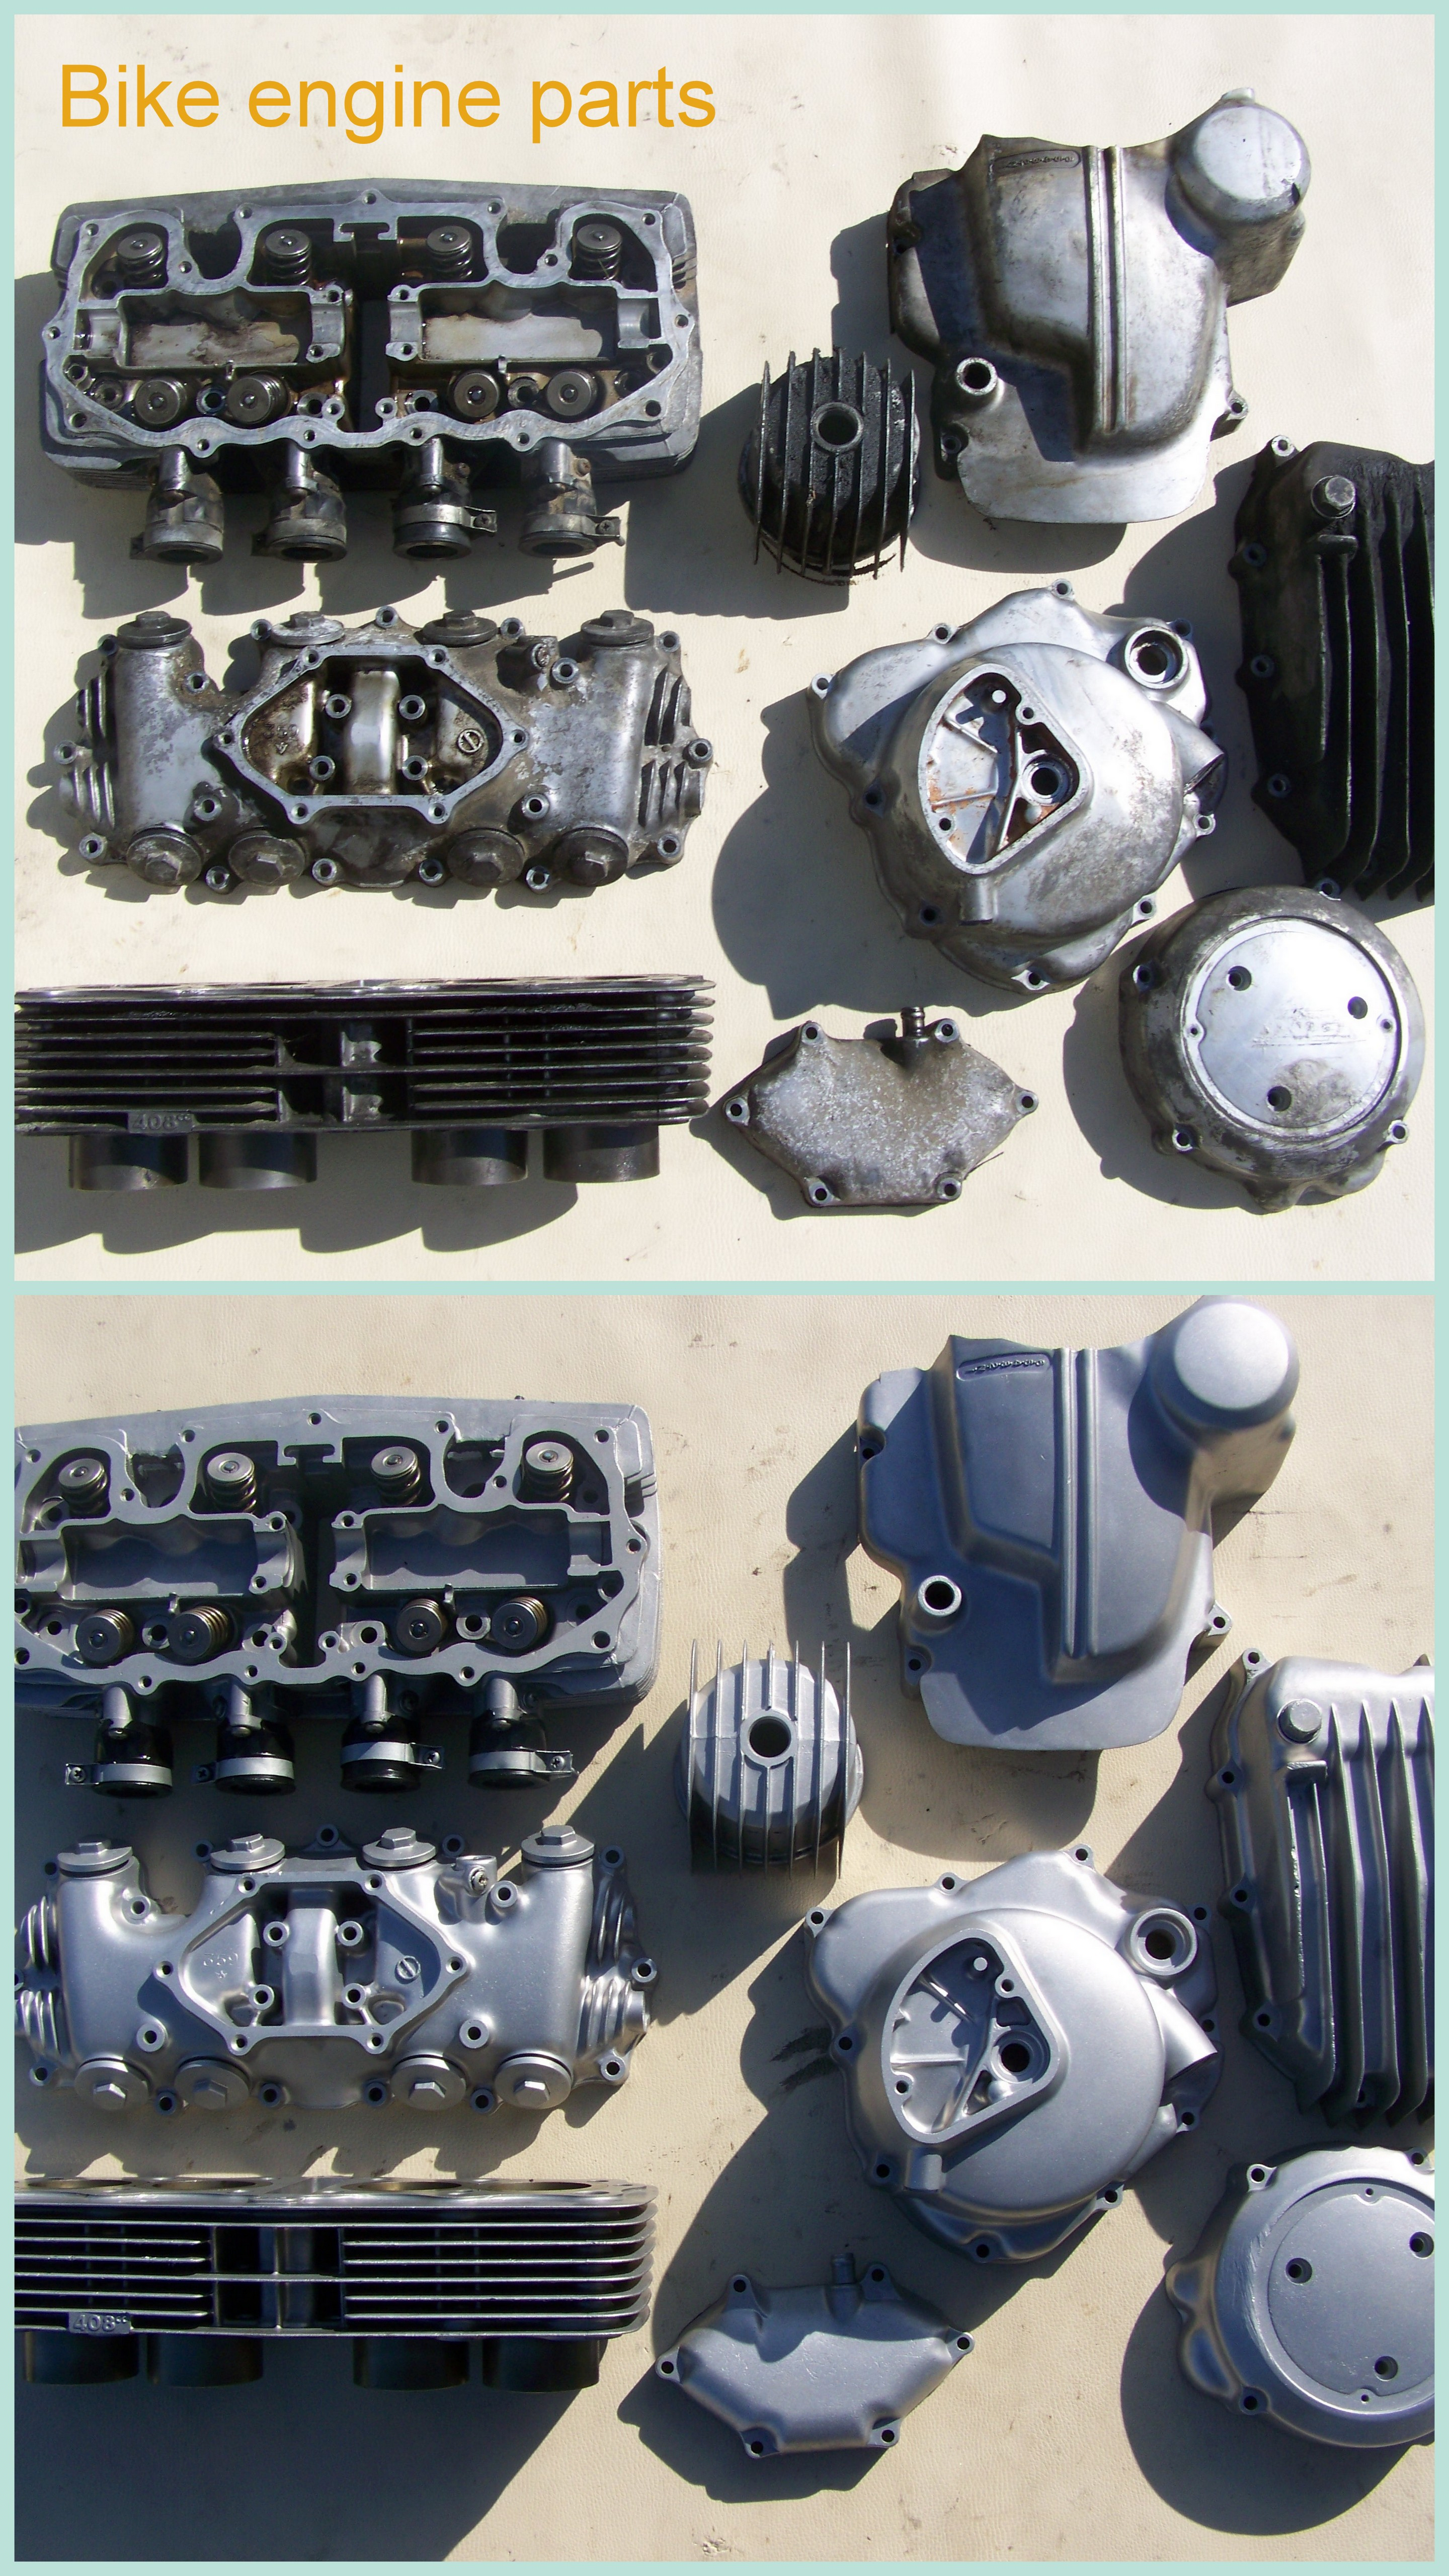 Bike engine parts